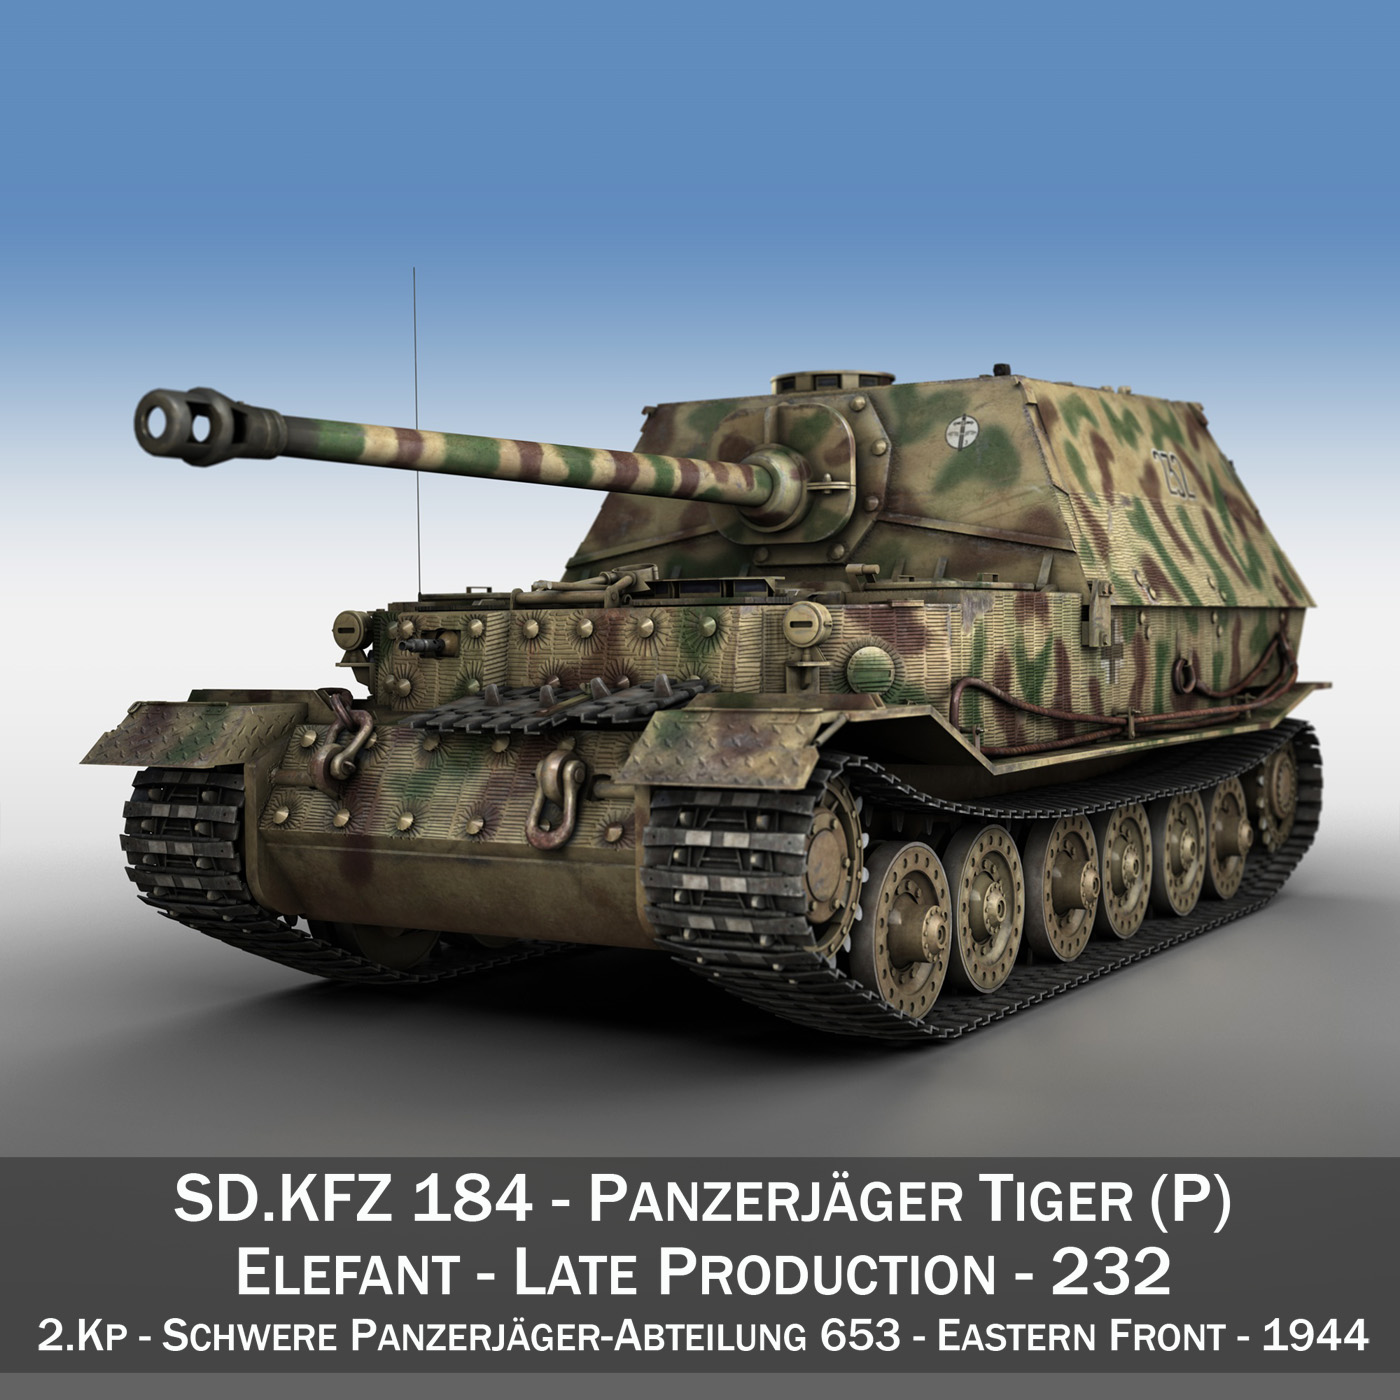 Elefant Tank destroyer - Tiger (P) - 232 3d model 3ds fbx c4d lwo obj 293339